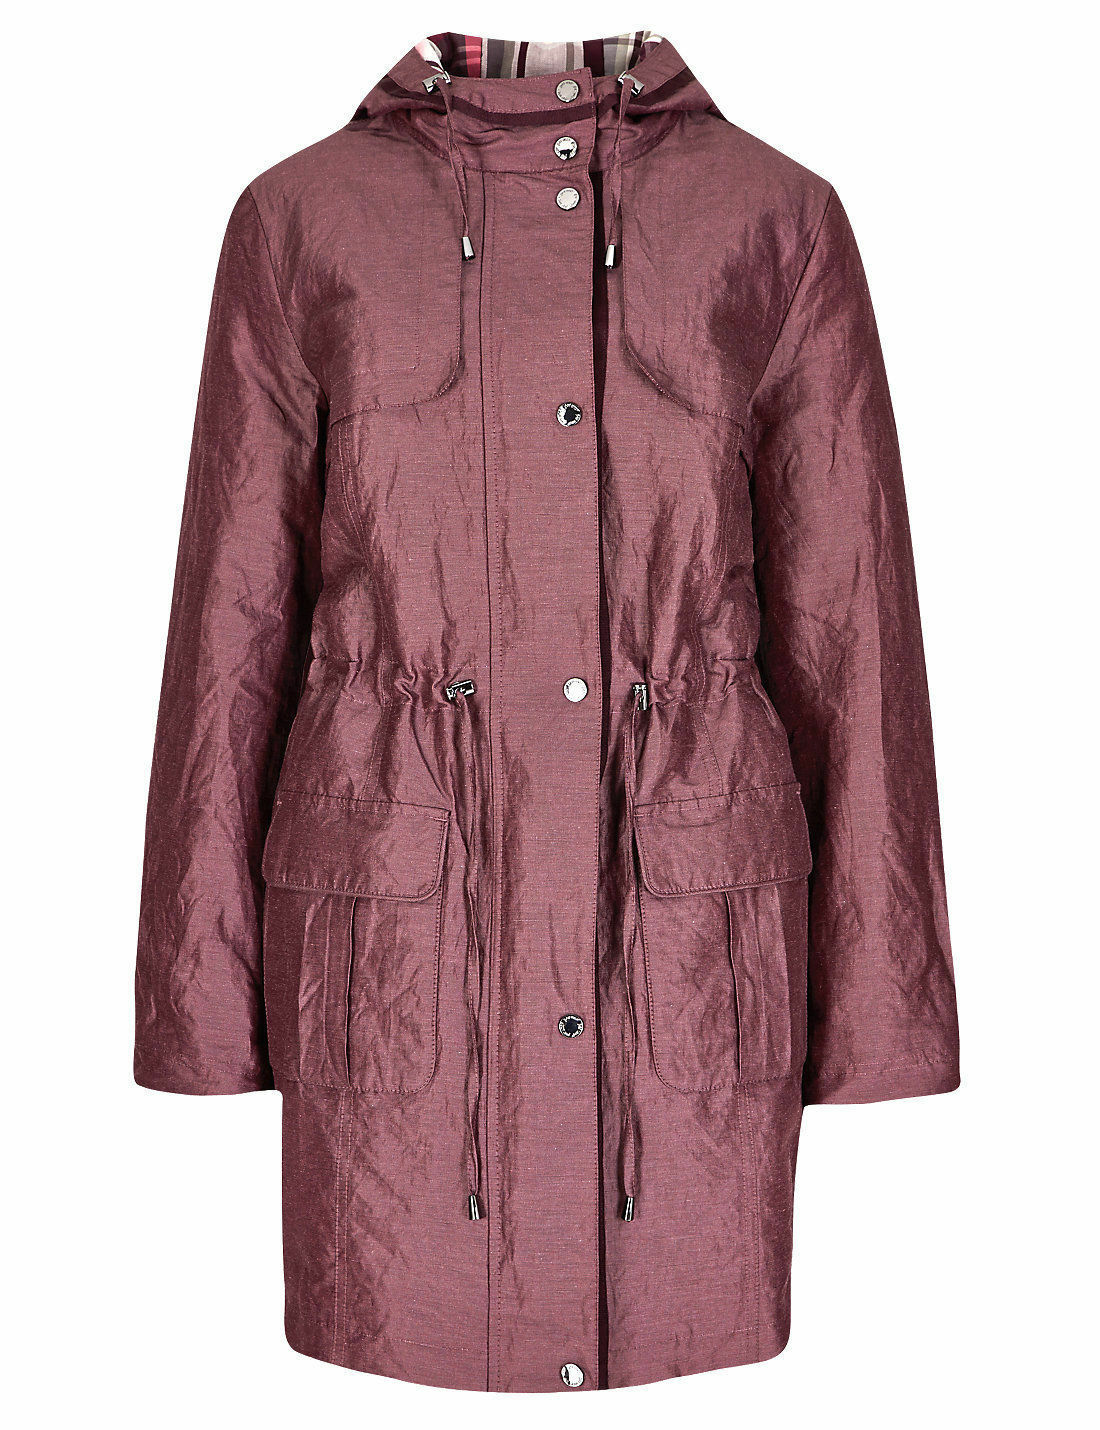 M&S Women's PER UNA Thermal Quilted Hooded Stormwear Size UK8 EUR36